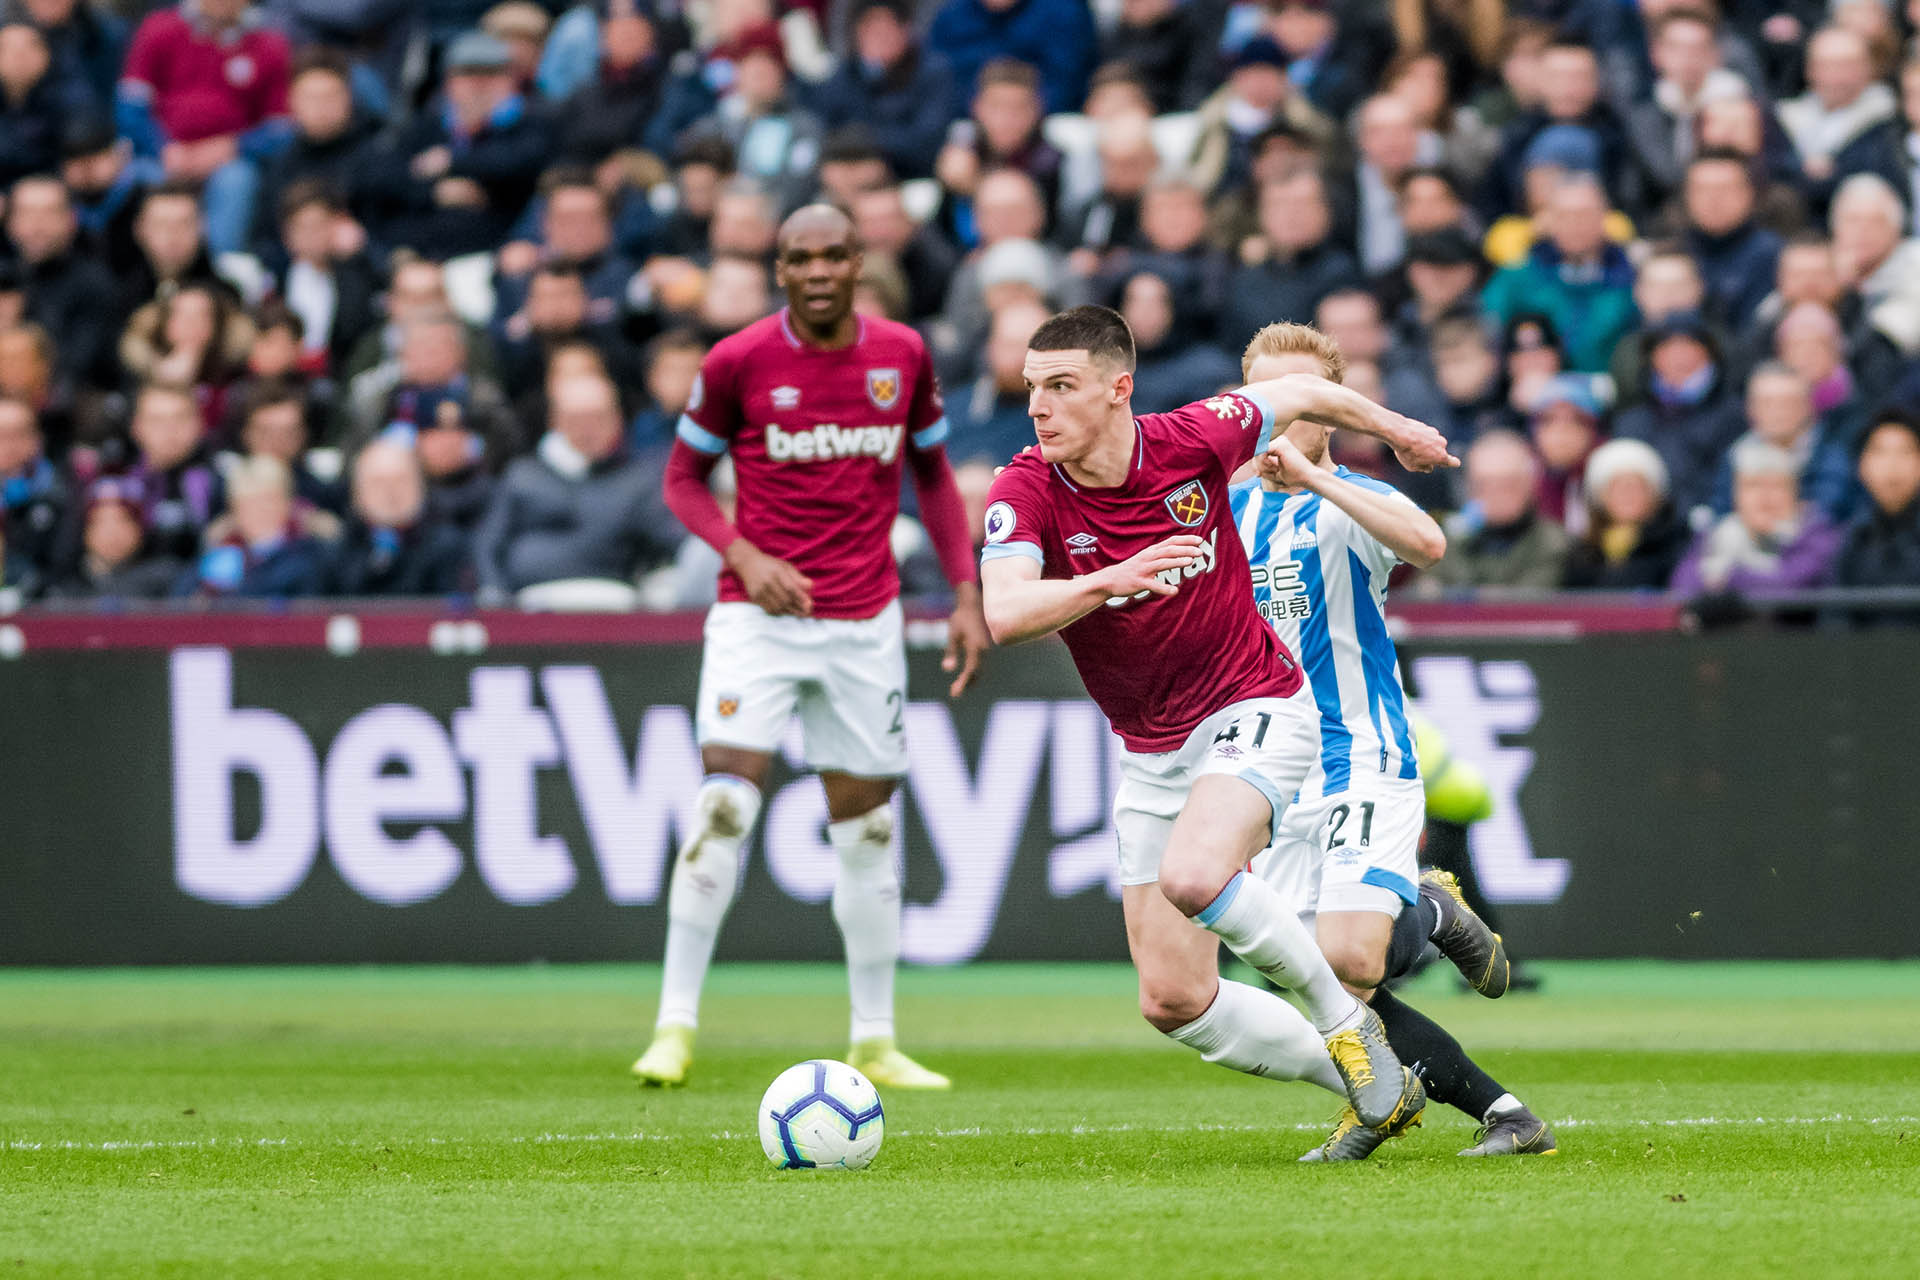 El inglés Declan Rice (West Ham United) USD 43,8 millones